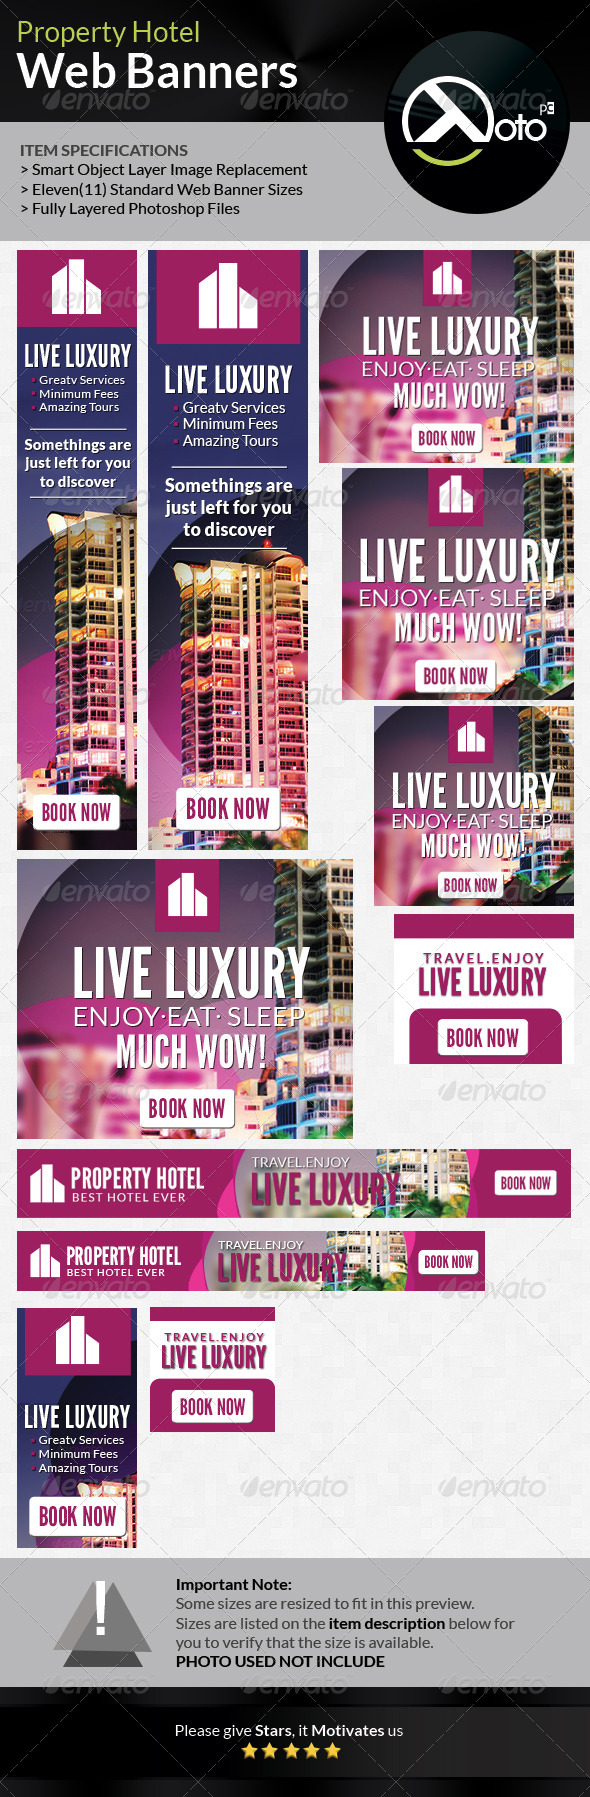 Property Hotel Web Banner - Banners & Ads Web Elements